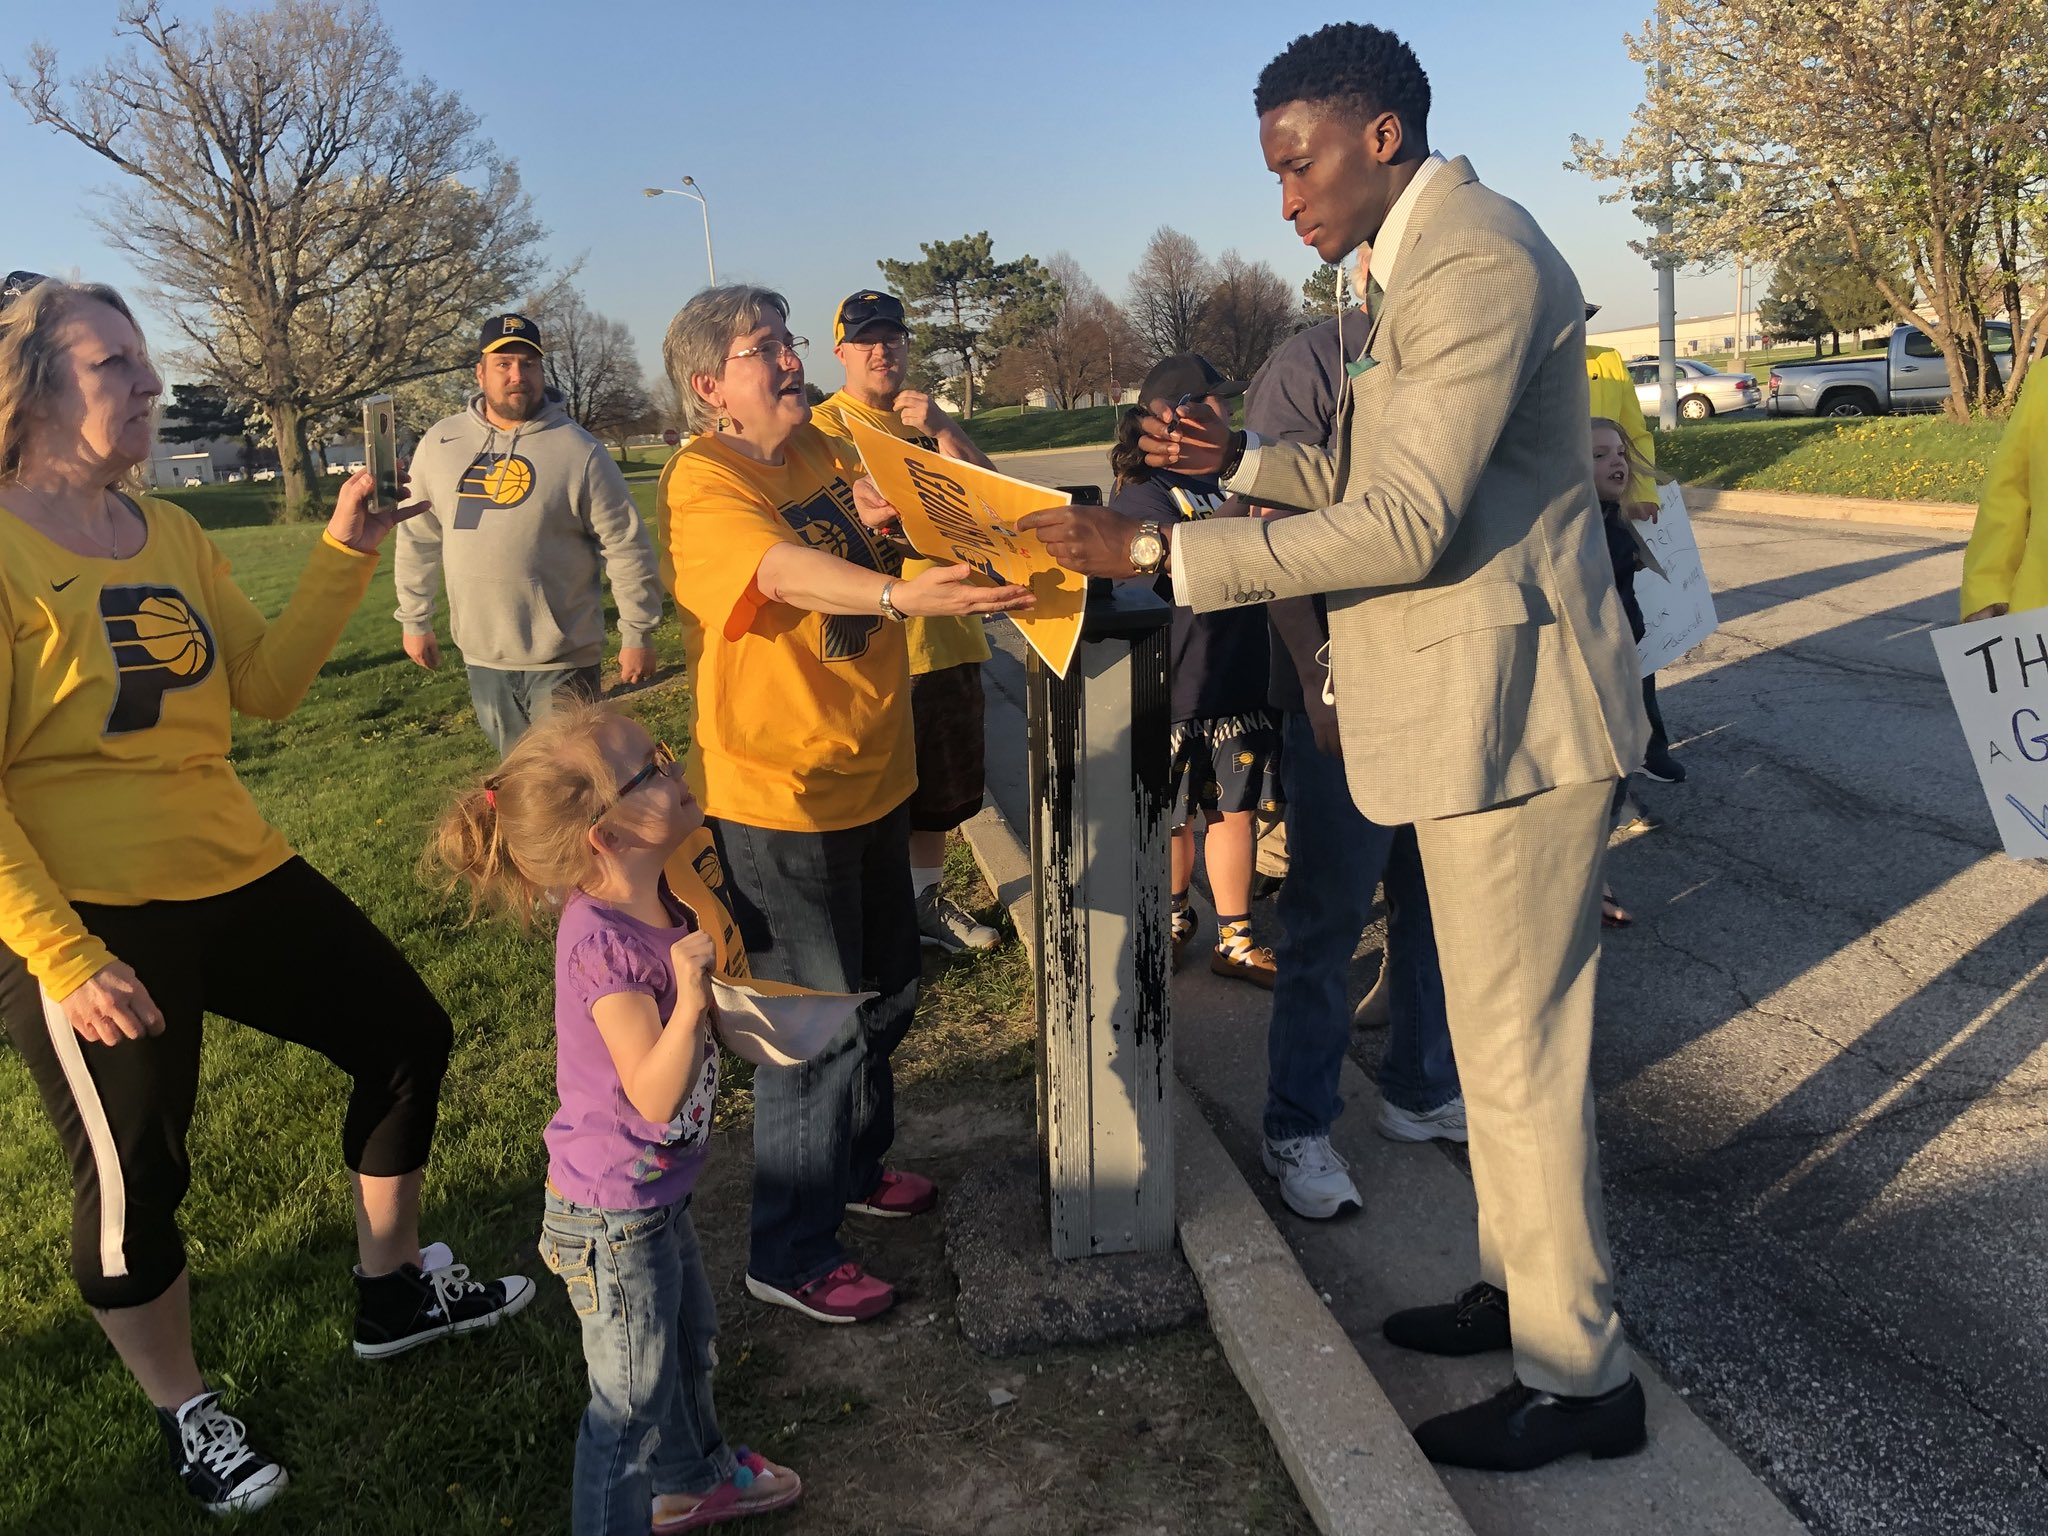 A group of #Pacers fans awaited the team's return to Indy. So Victor Oladipo personally greeted each of them. https://t.co/TeixDEDn70